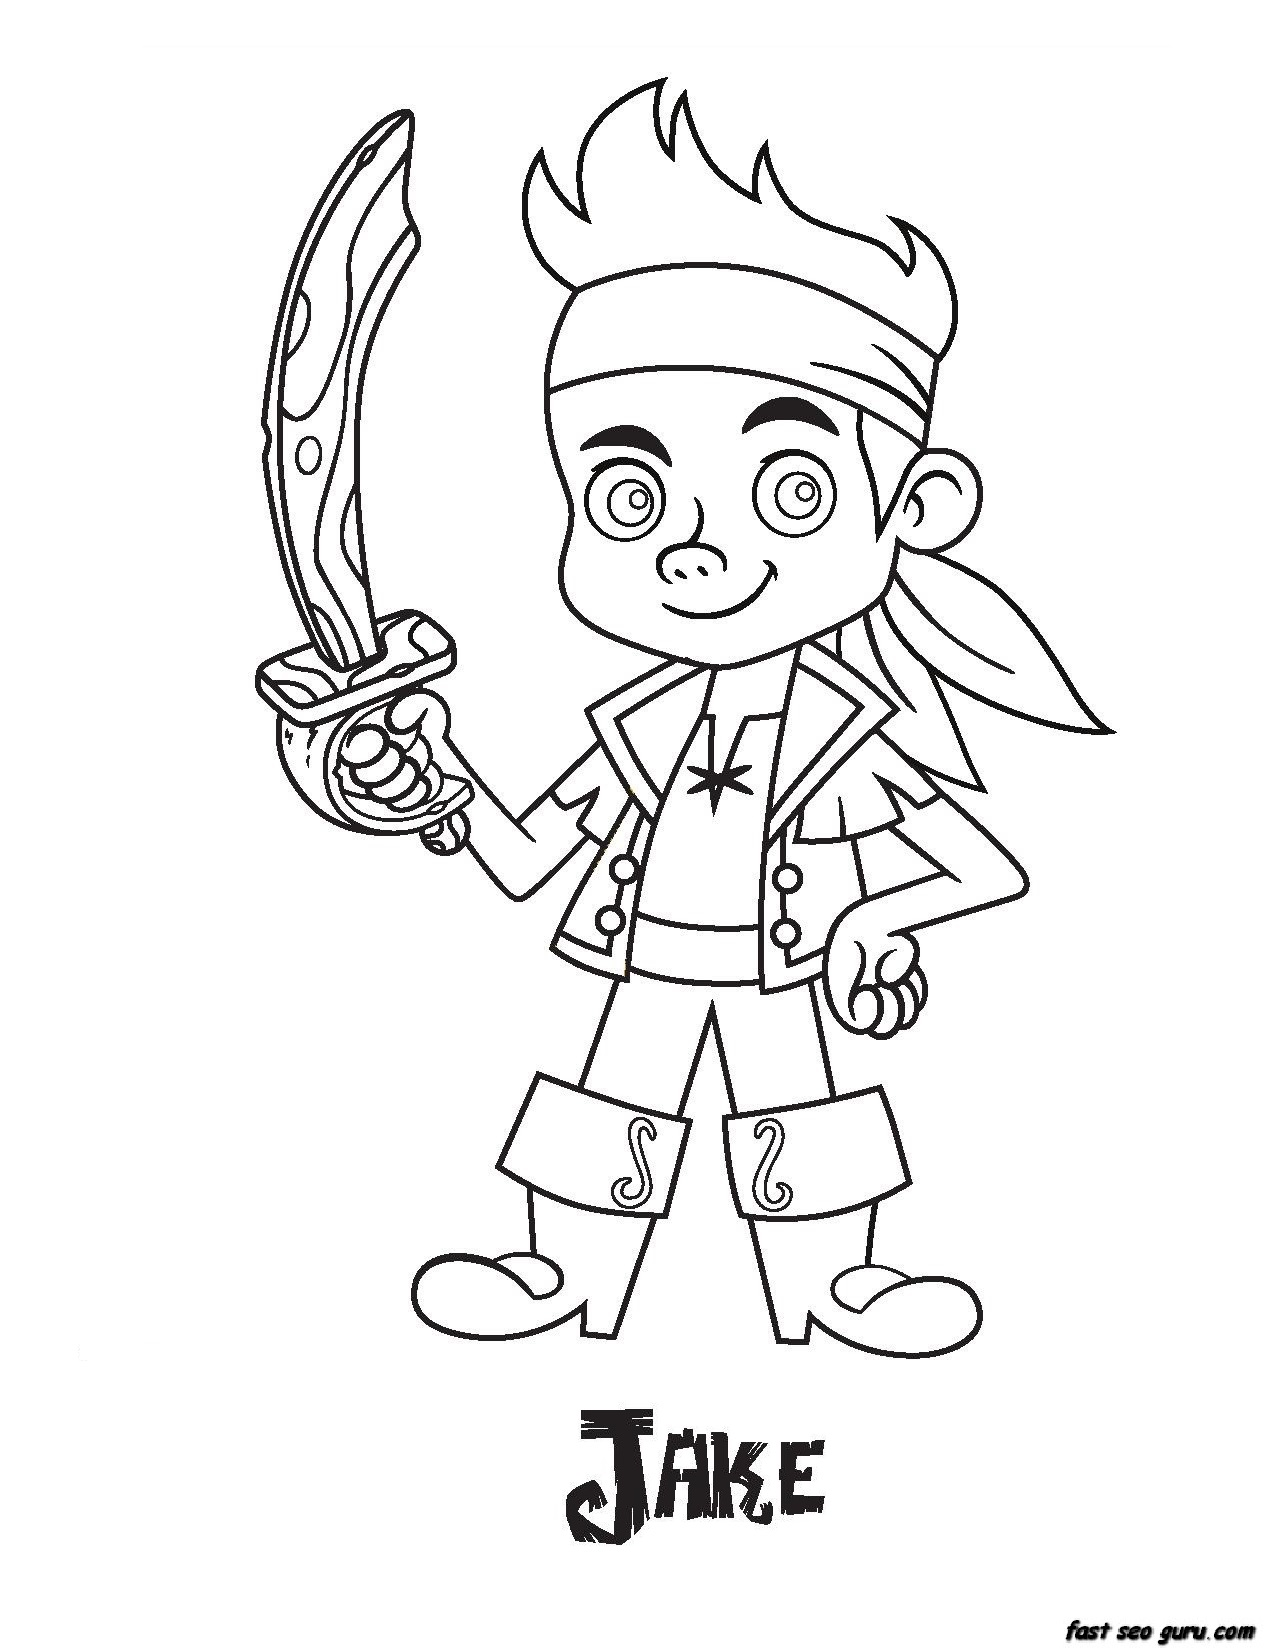 pirate coloring pages cartoon - photo#36